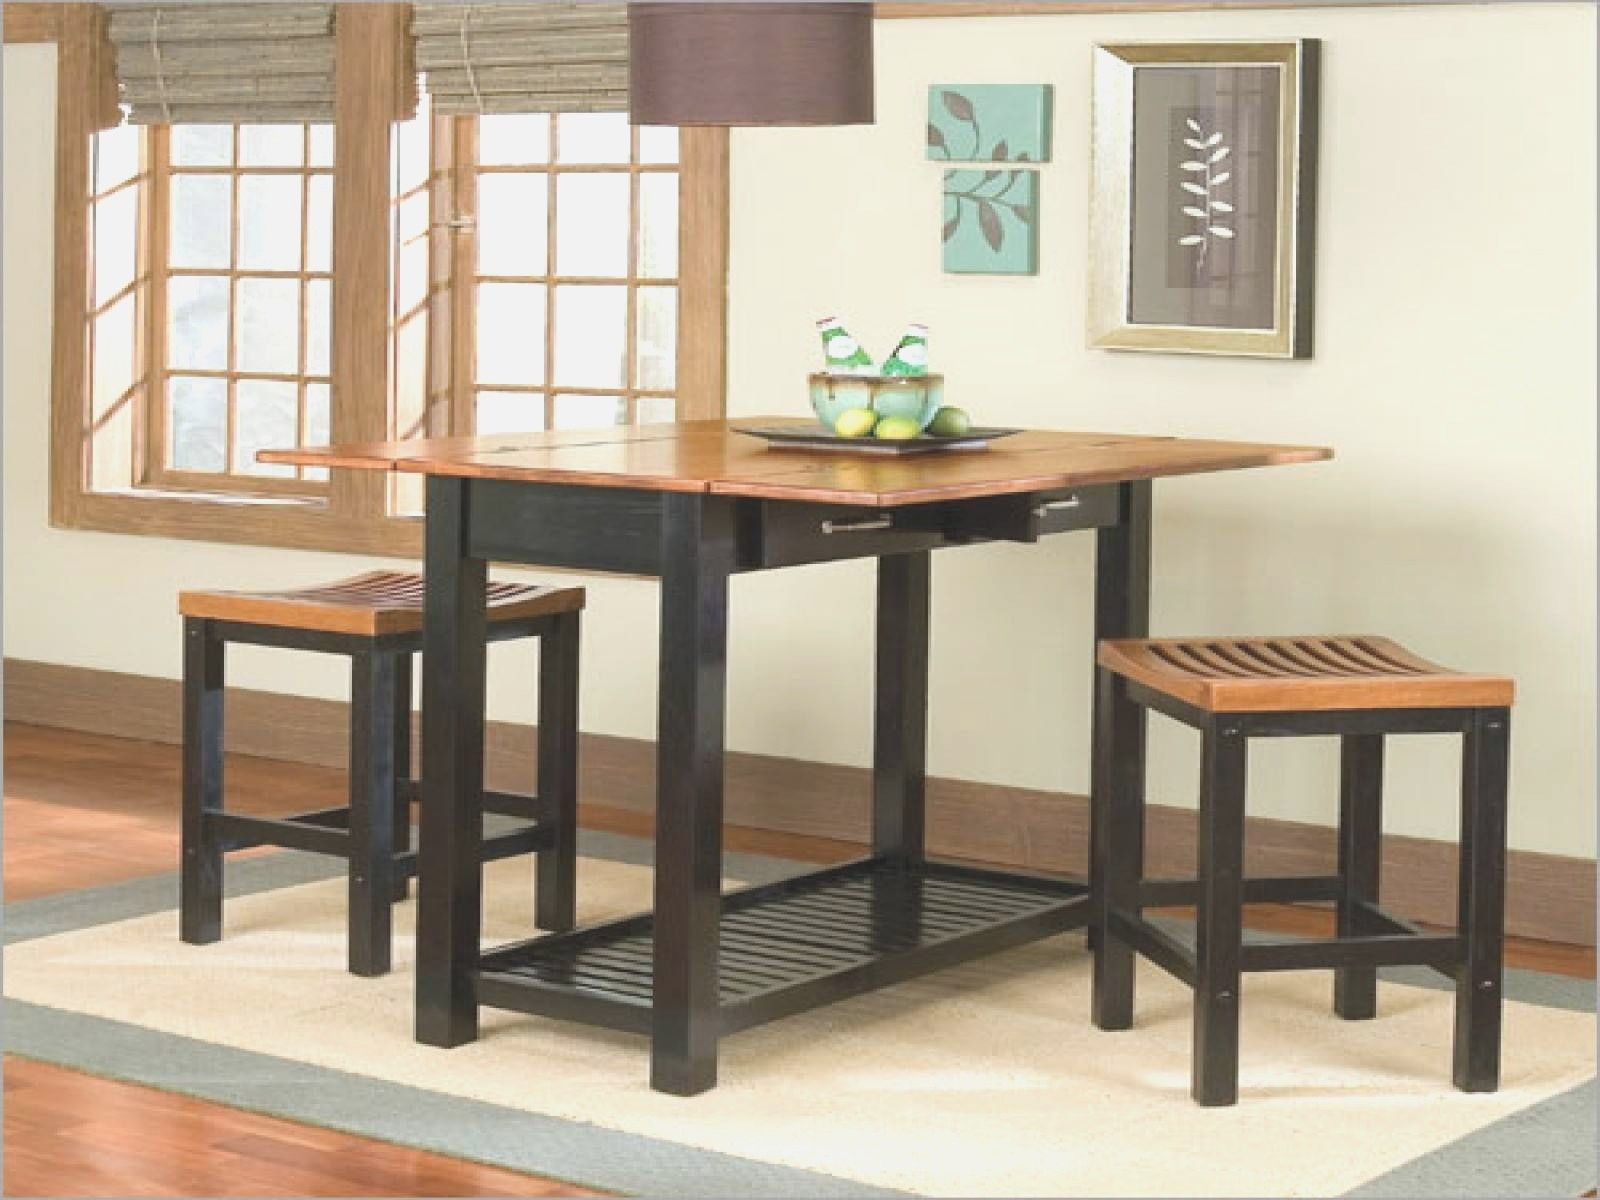 portable kitchen island table. Kitchen Island Butcher Block Top - Black Top, Table Portable R